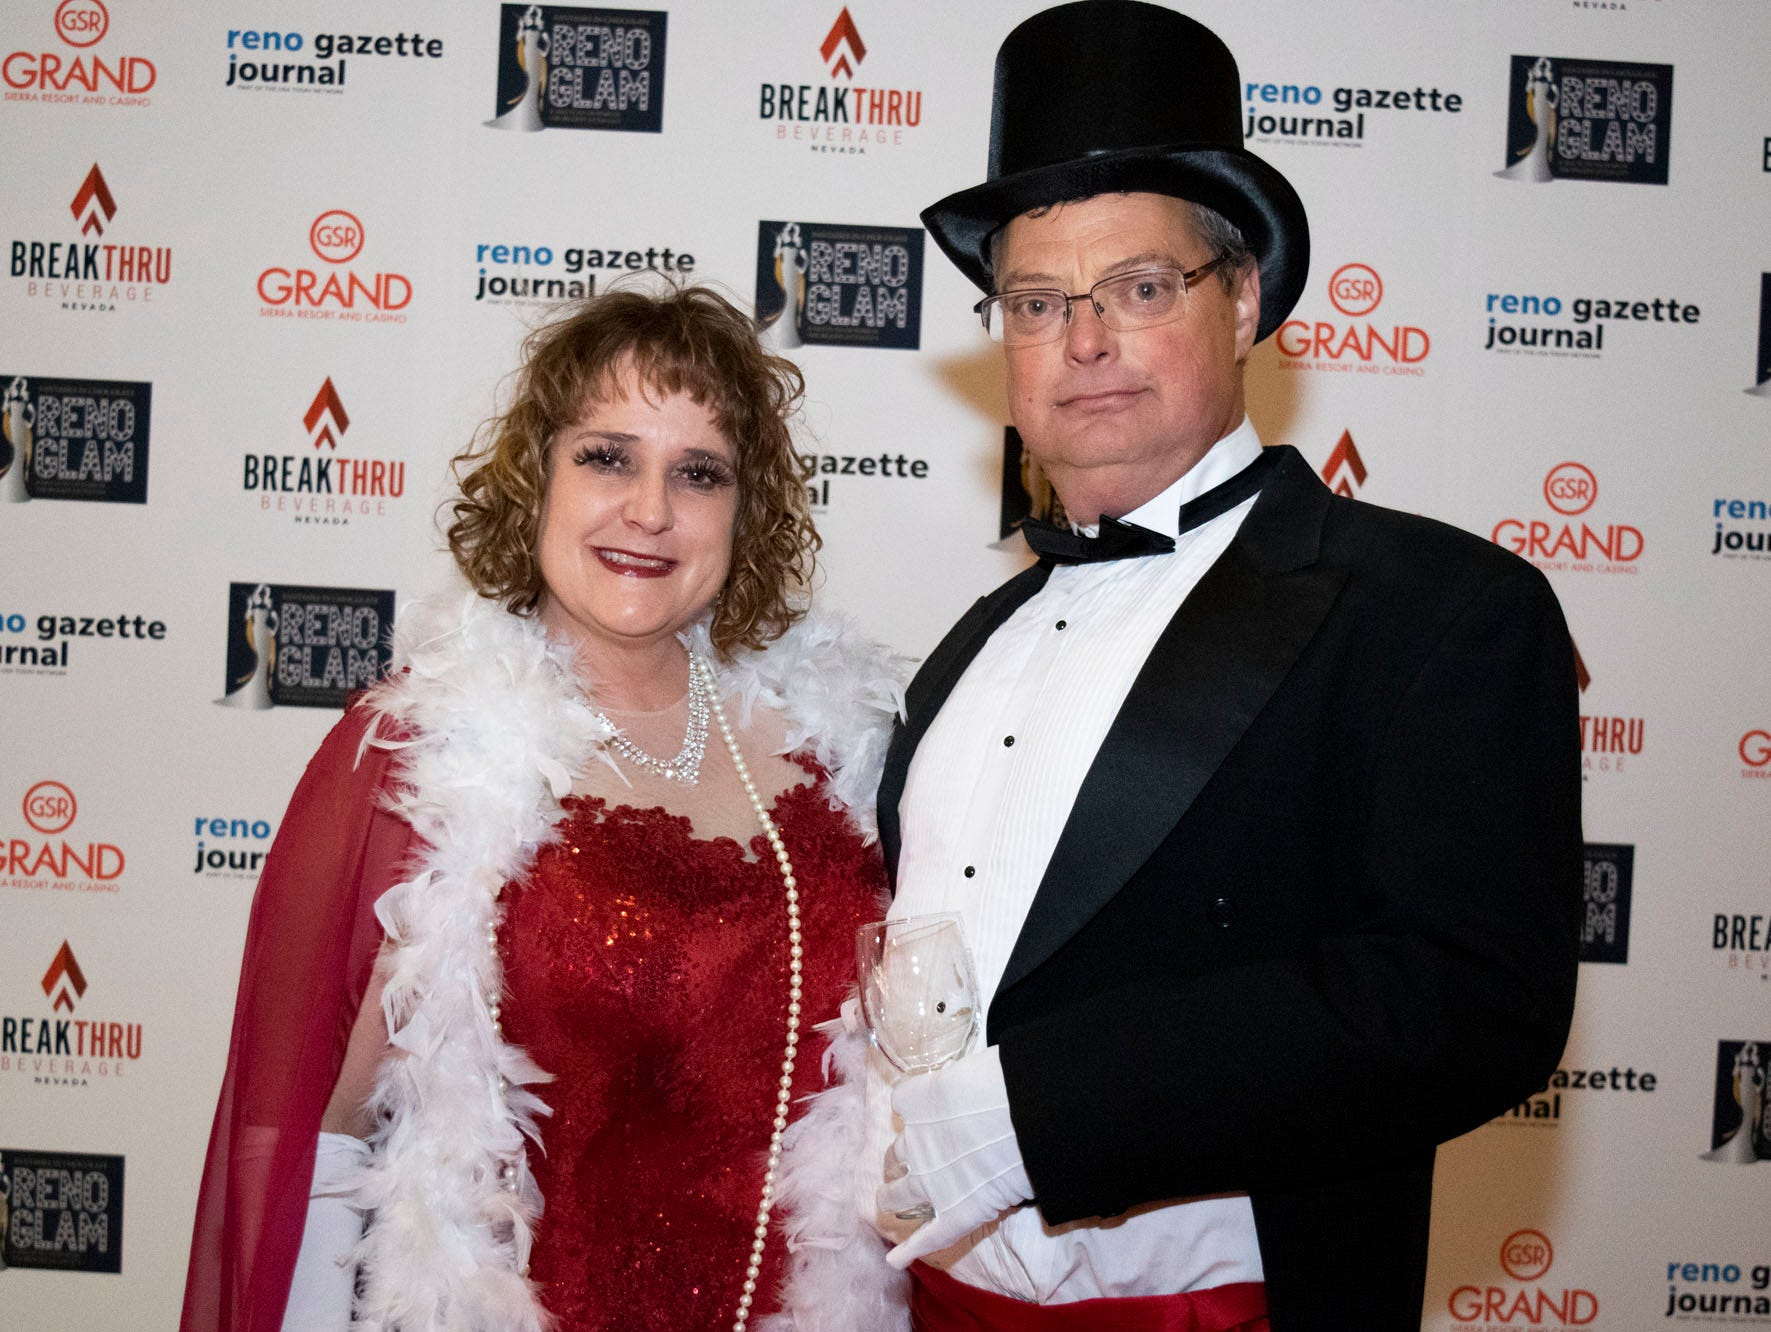 It's all glitz and glamour at this year's Fantasies in Chocolate Gala at the Grand Sierra Resort on Nov. 17, 2018. Reno, Nev.